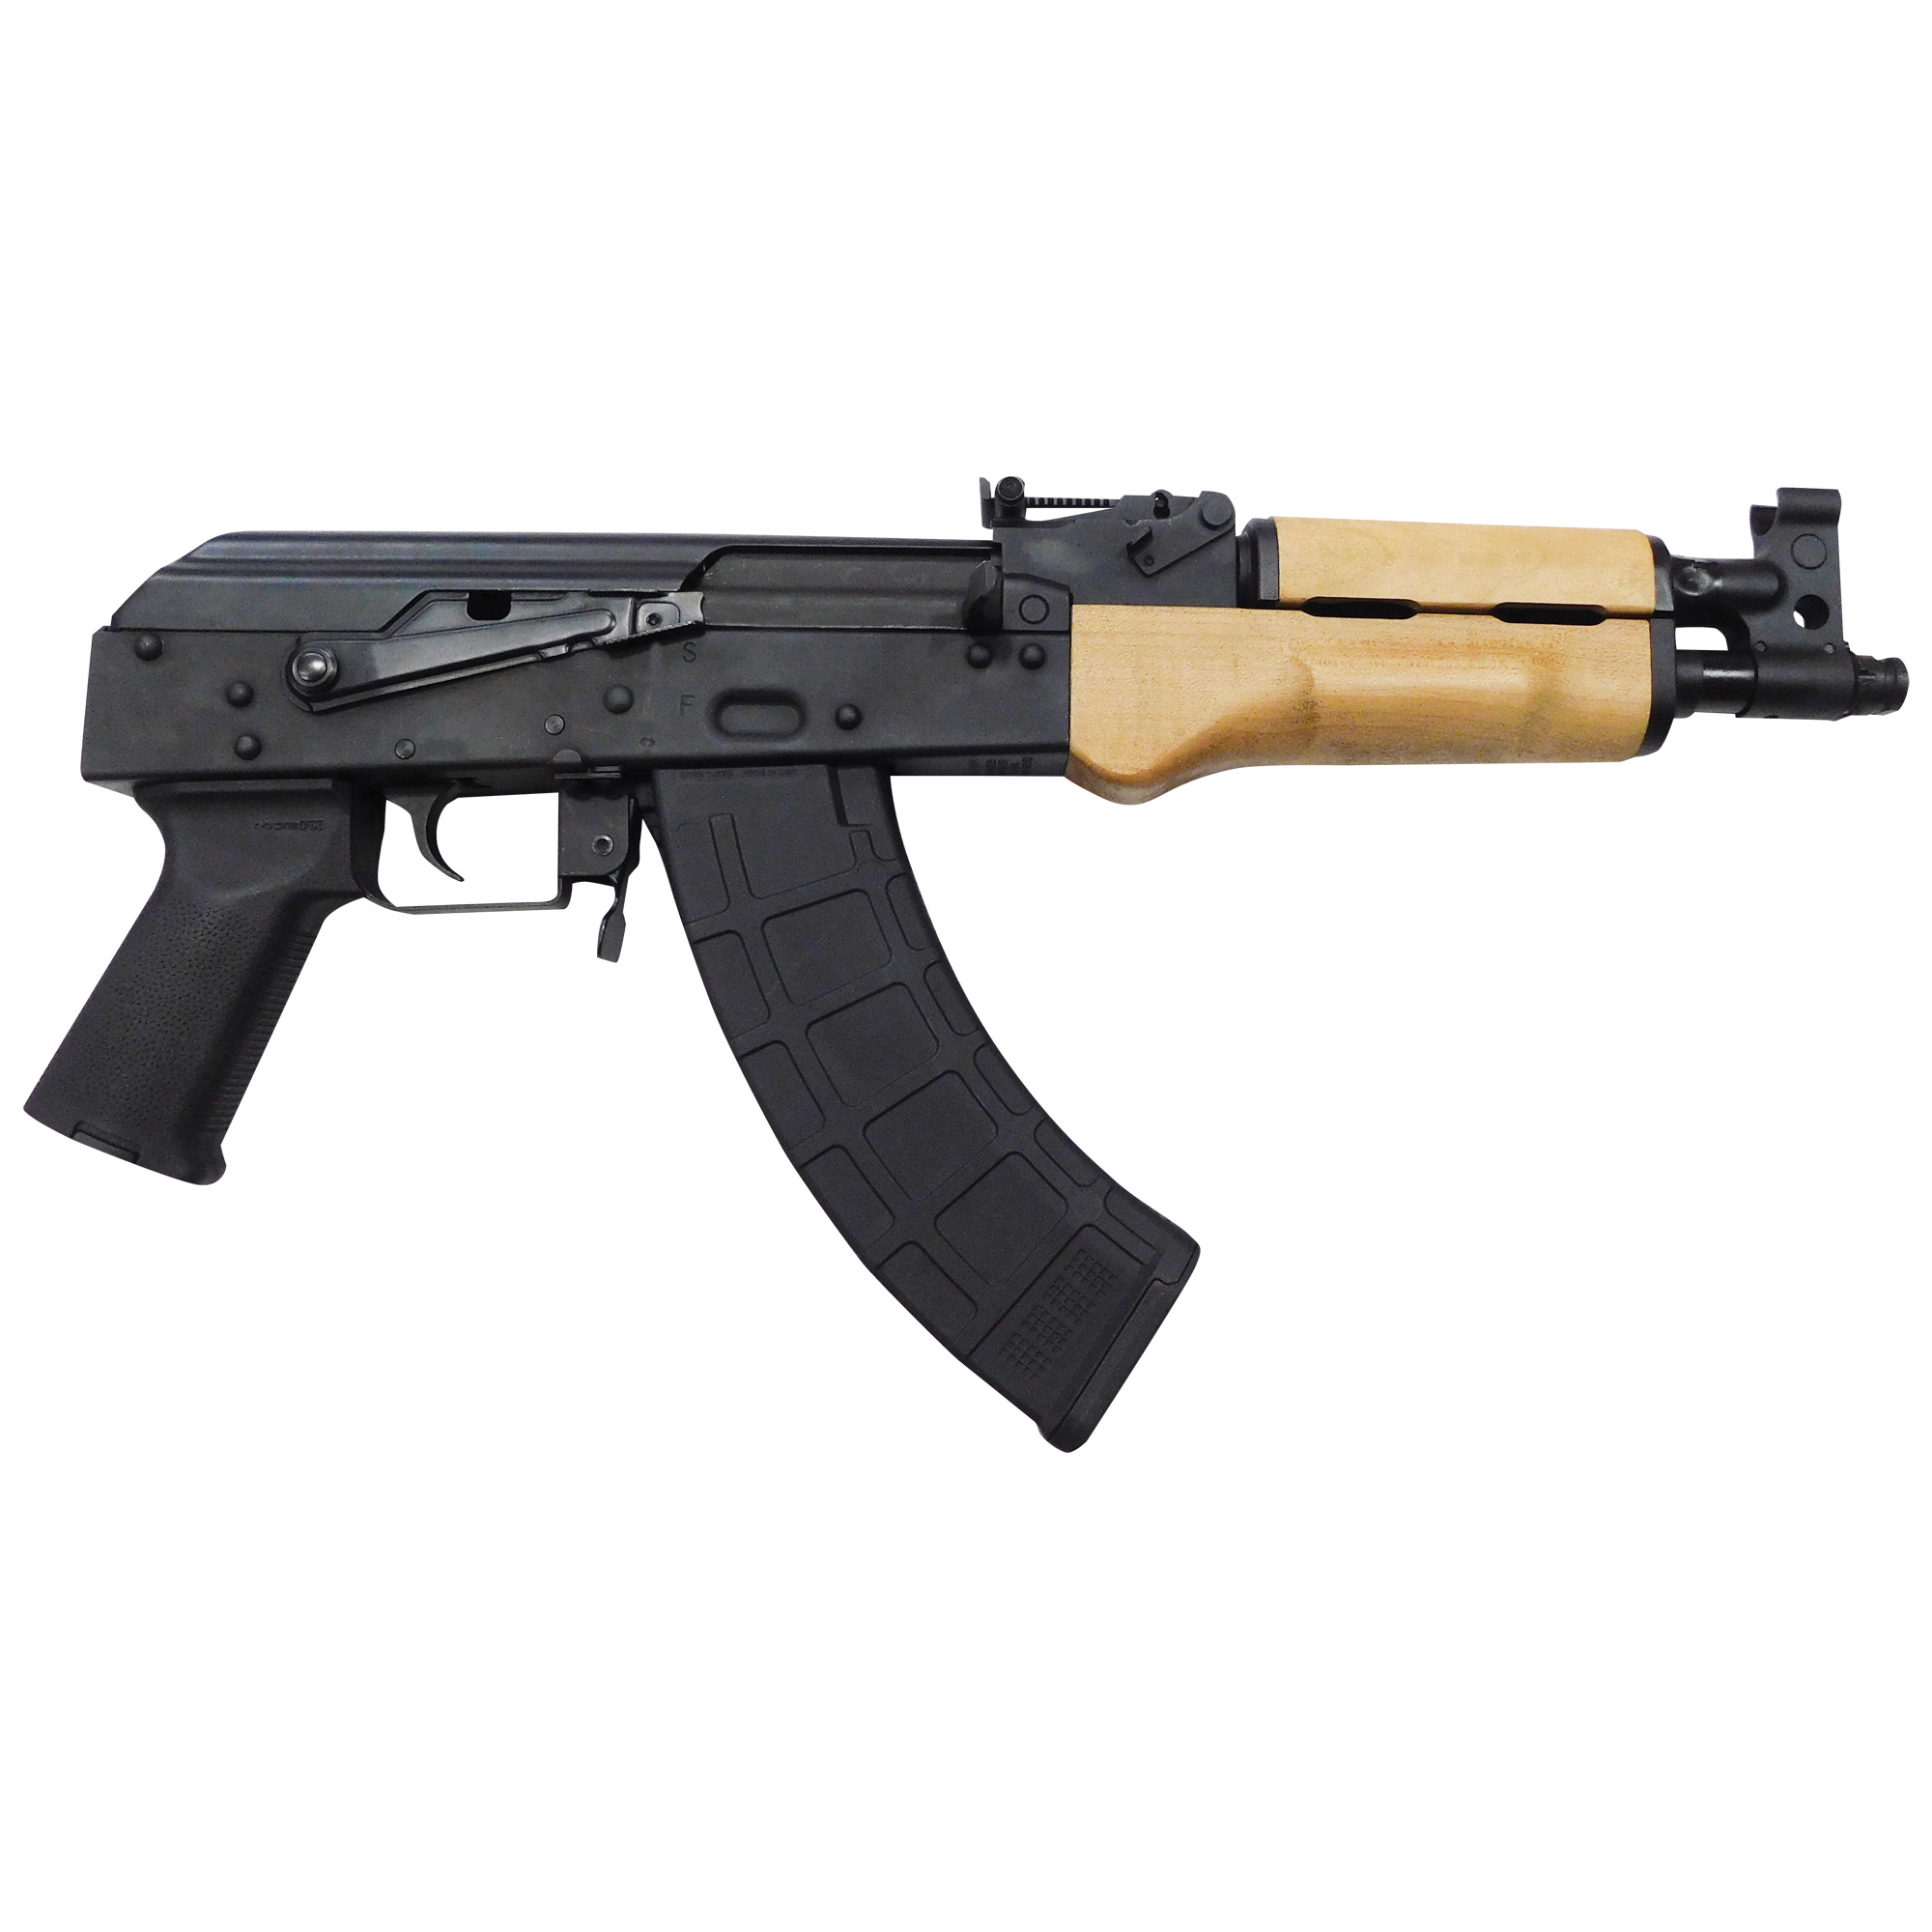 """The firepower and reliability of an AK-47 packed into pistol form makes the Draco Pistol a perfect option for the modern prepper"""" the ultimate backup or truck gun"""" or simply something for a day of ultimate fun at the range."""